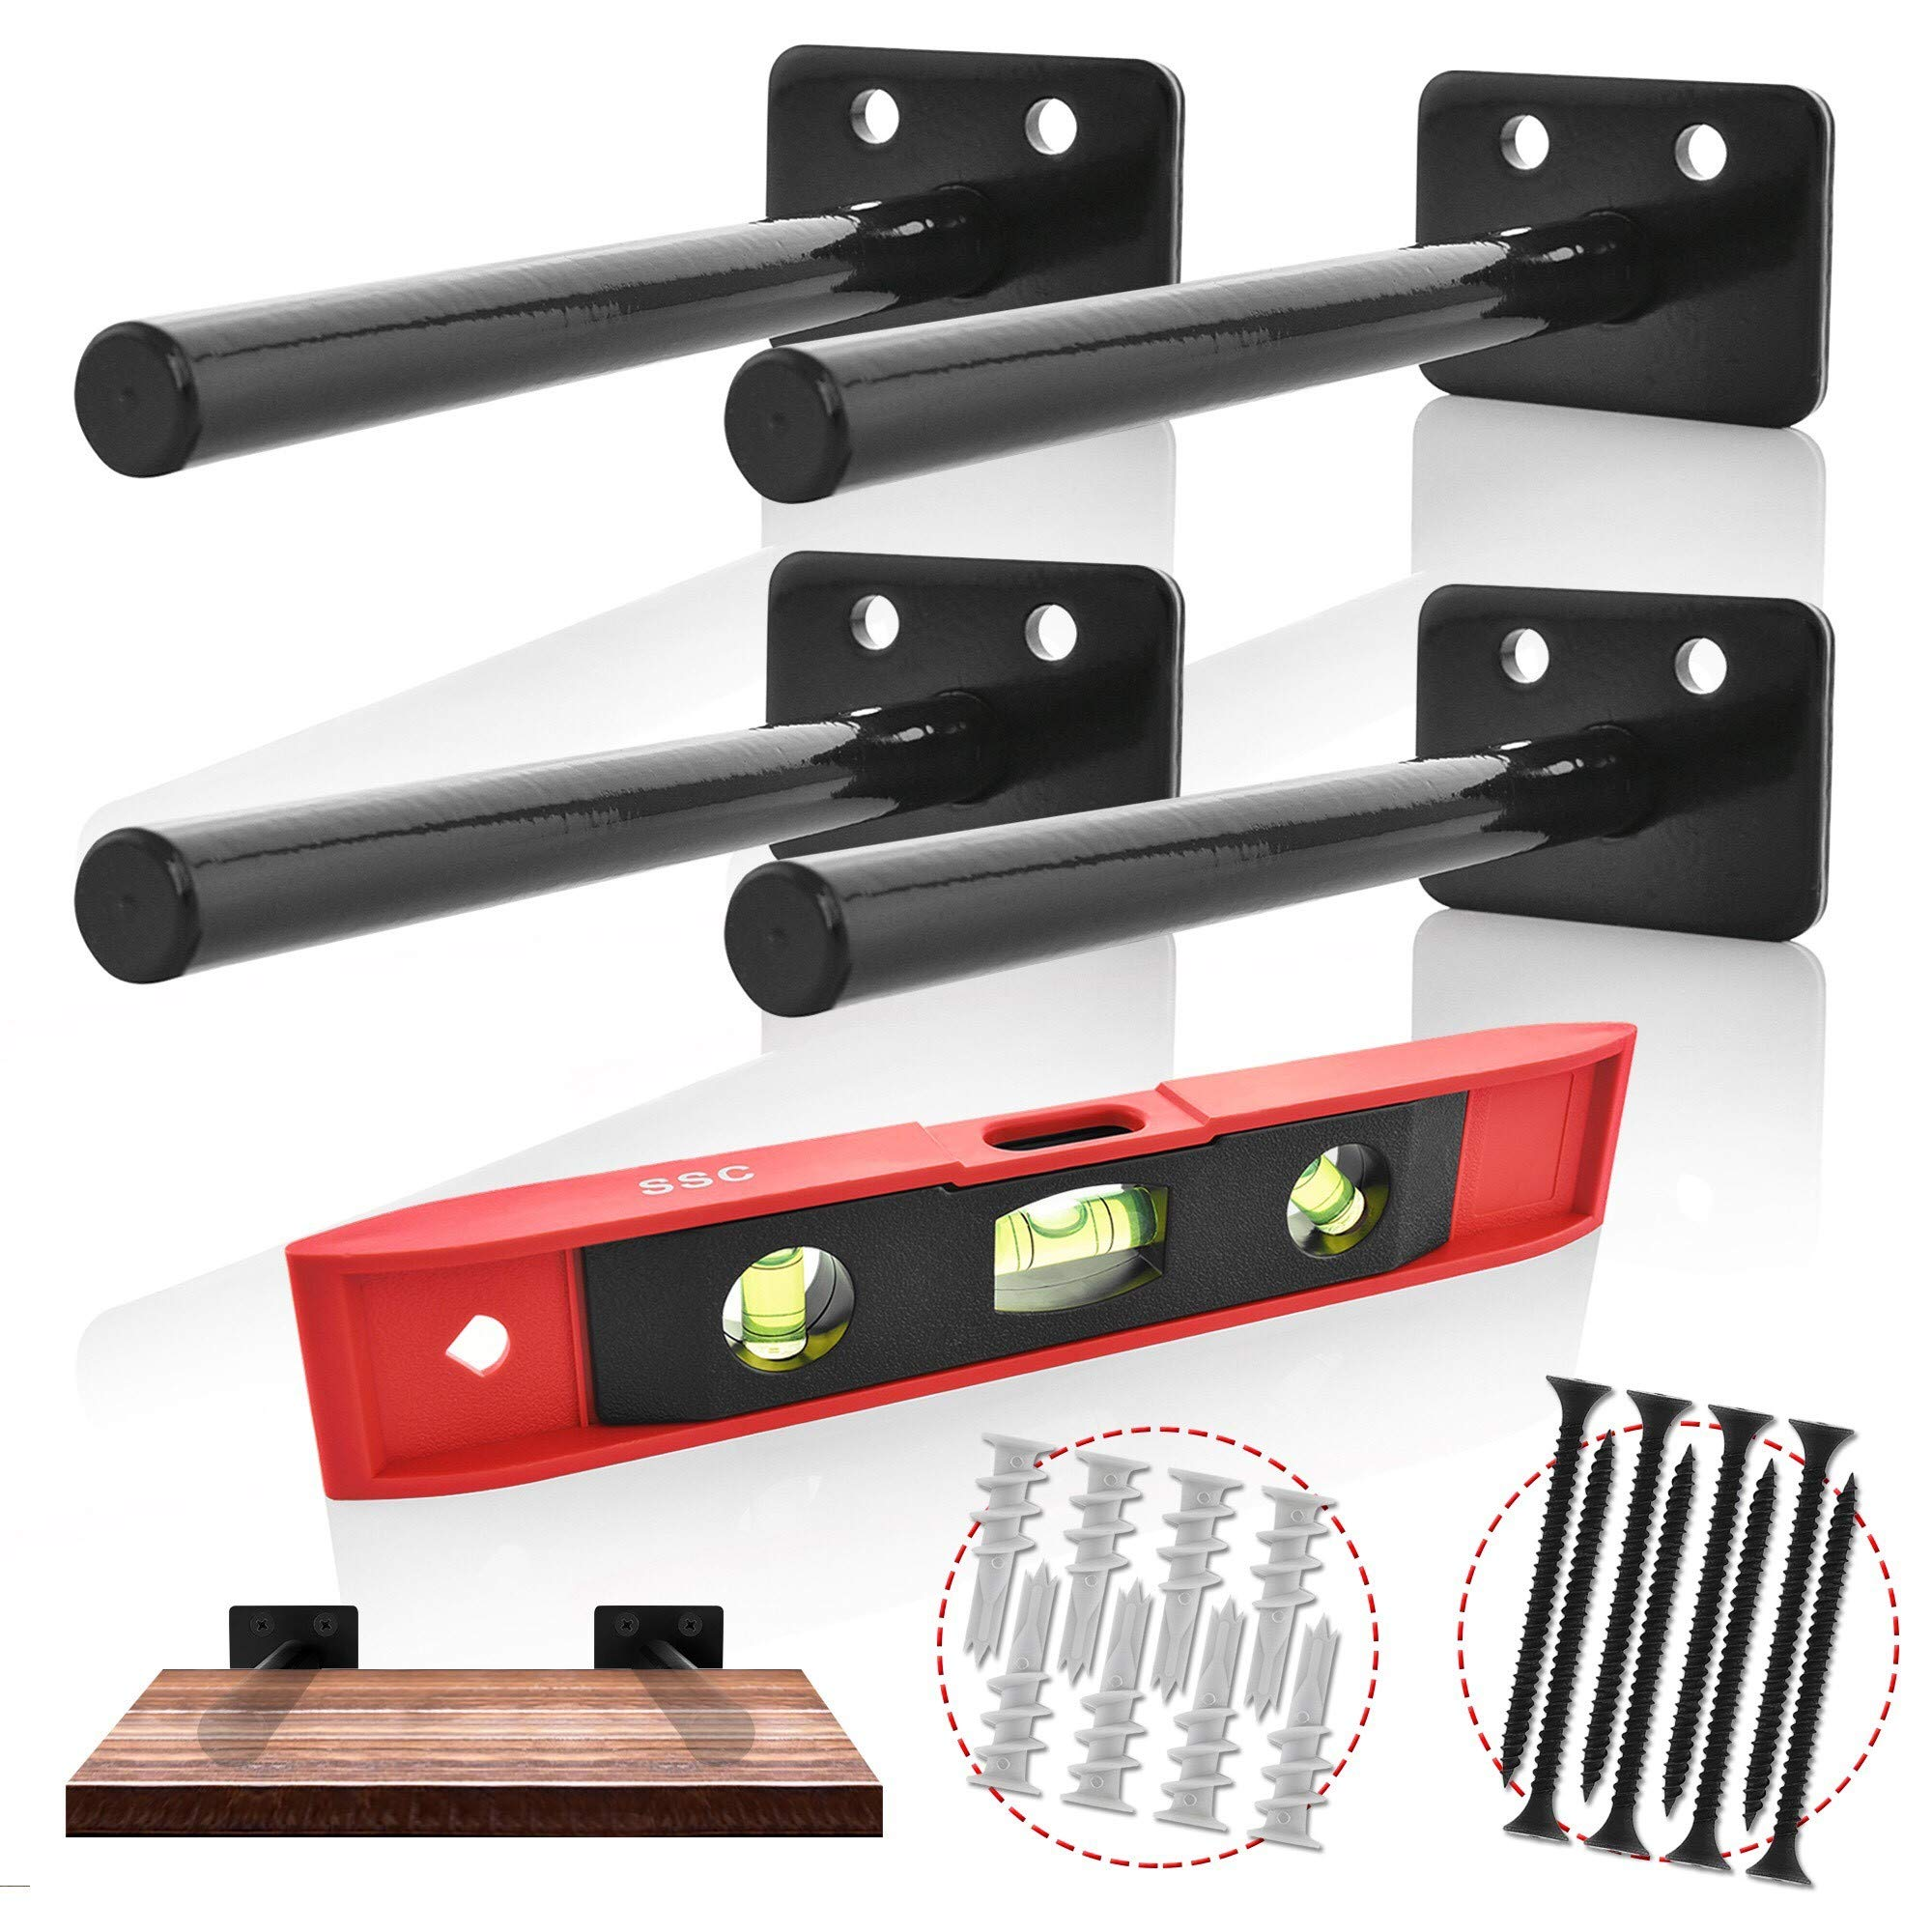 Floating Shelves Support Brackets - Home Décor, Storage, Organization - 4 x Heavy-Duty Powder Coated Stainless Steel Blind Shelf Supports - 8x Heavy-Duty Screws, 8x Drywall Anchors, BONUS Spirit Level by SSC CREATIONS